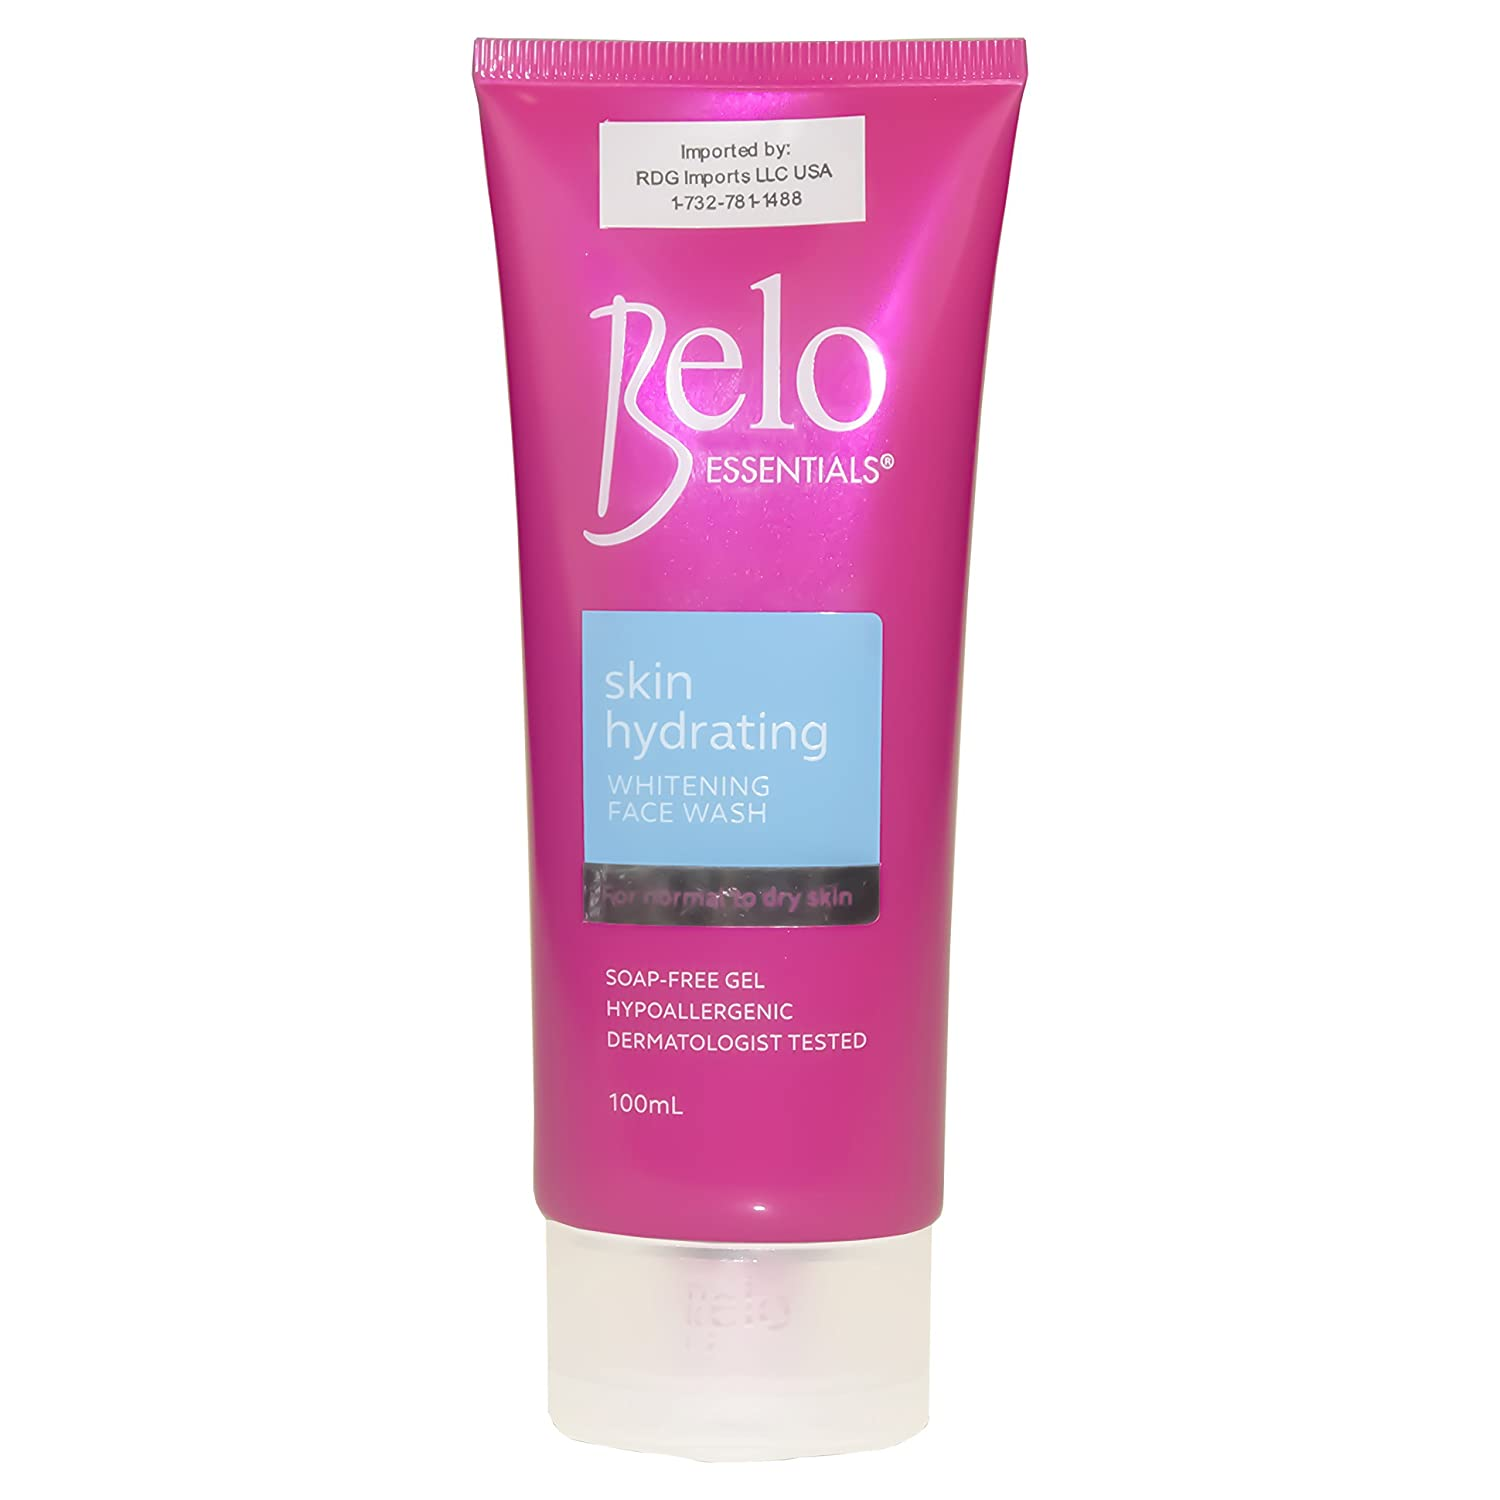 BELO Whitening Face Wash for Normal to Dry Skin 100ml